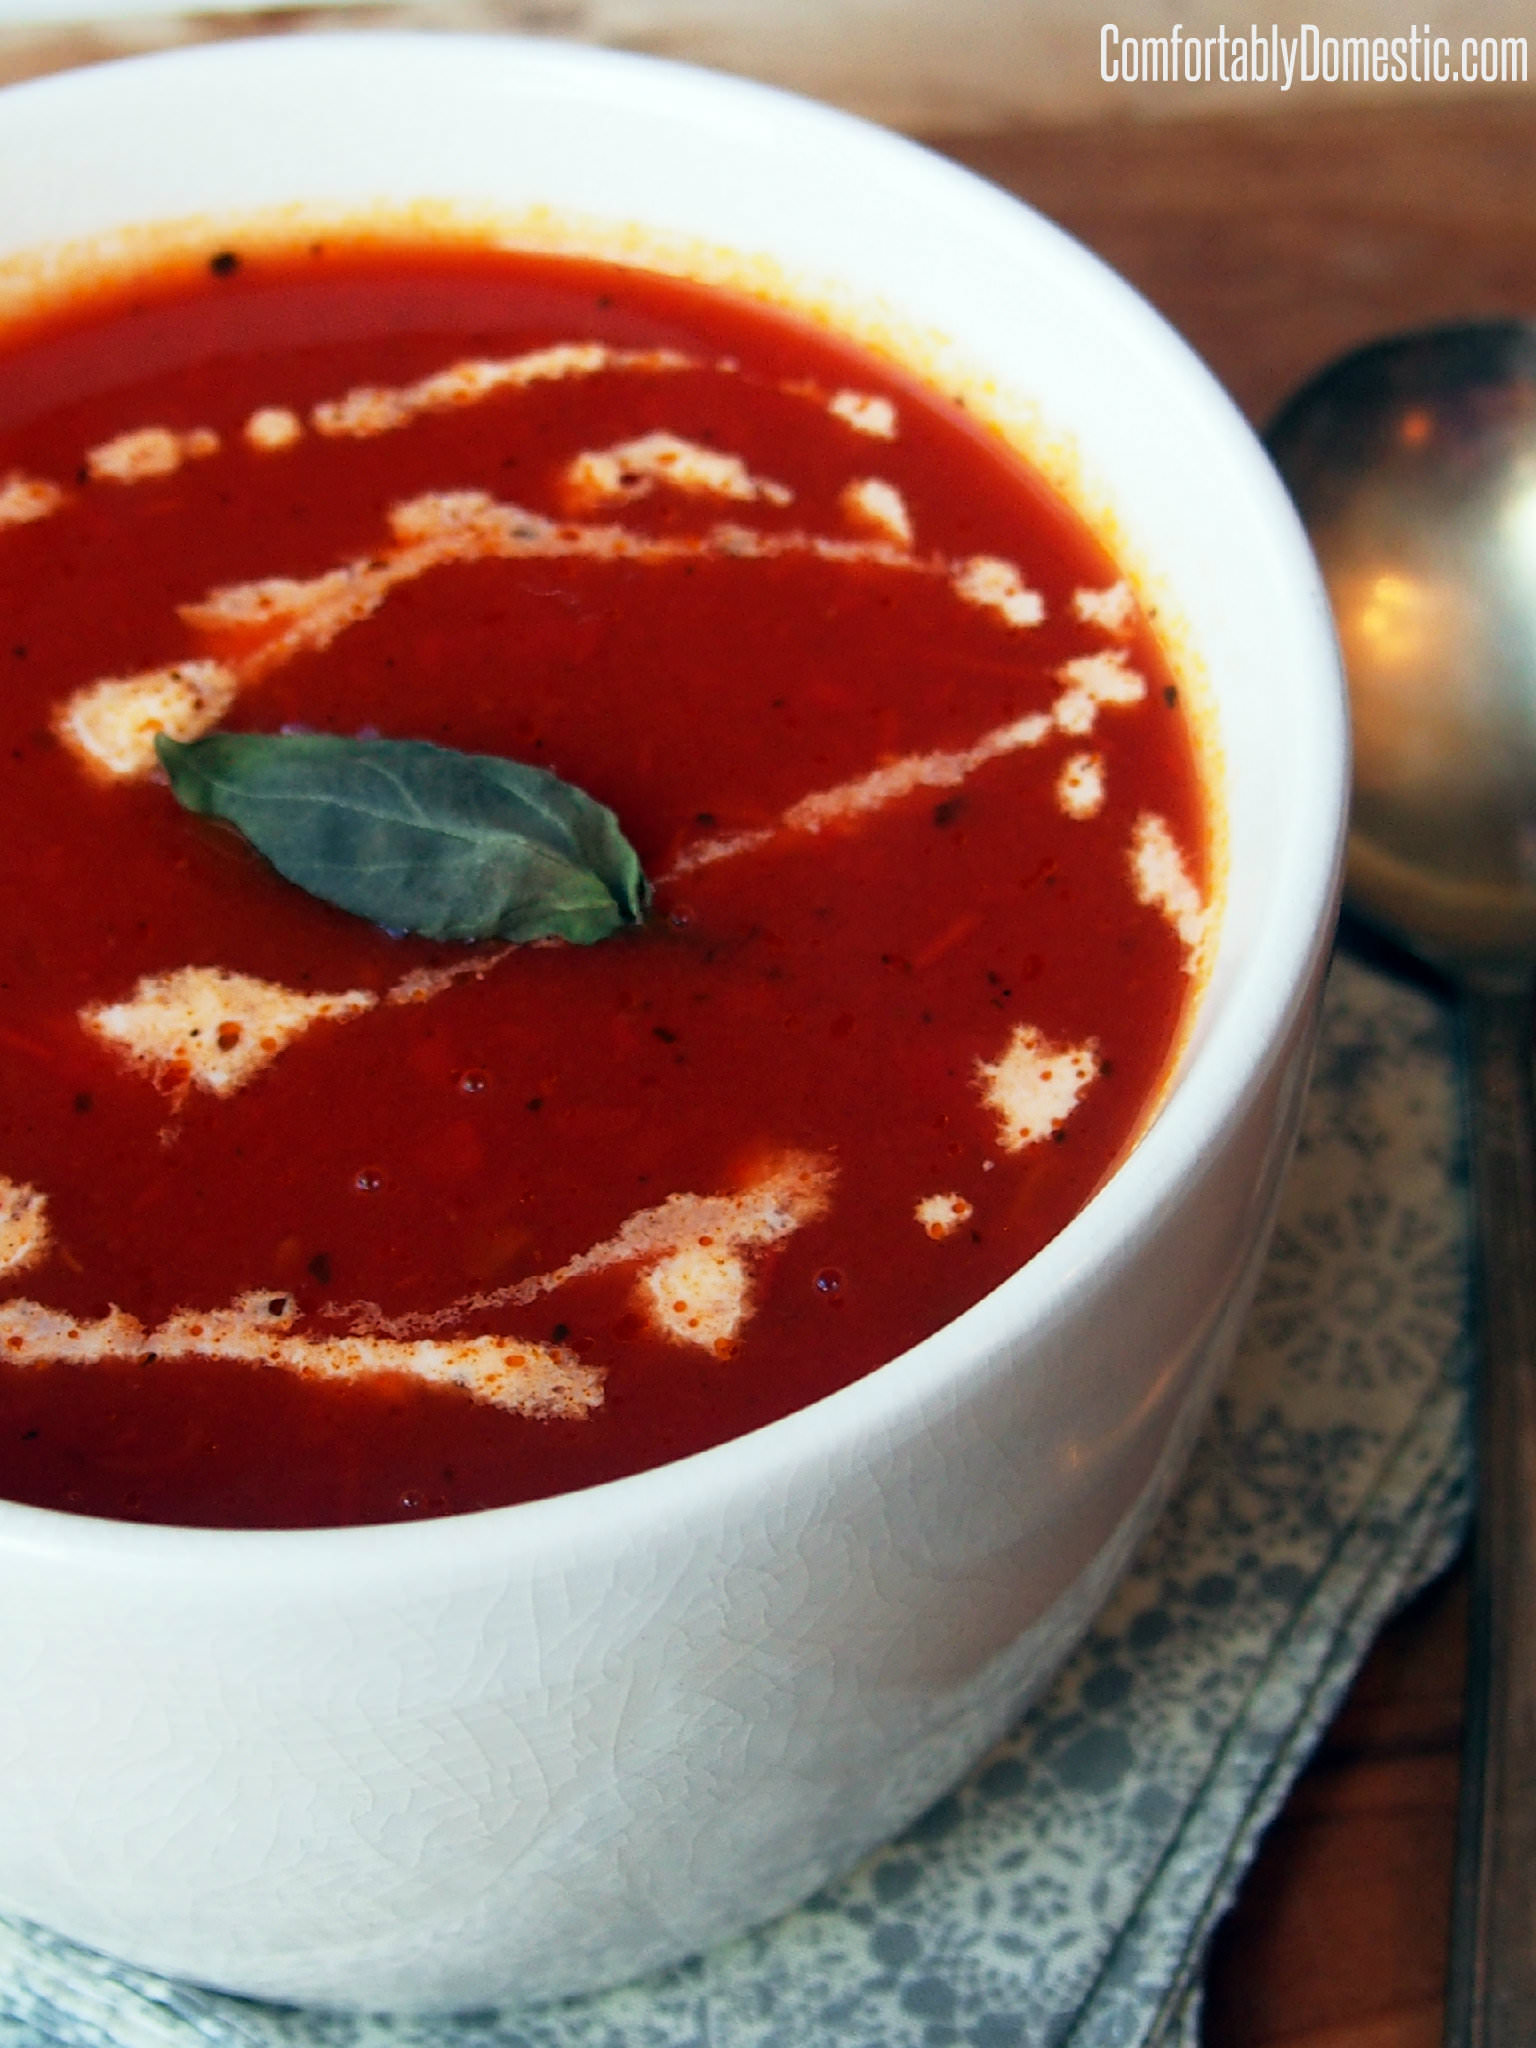 Ten Minute Homemade Tomato Soup Recipe | ComfortablyDomestic.com